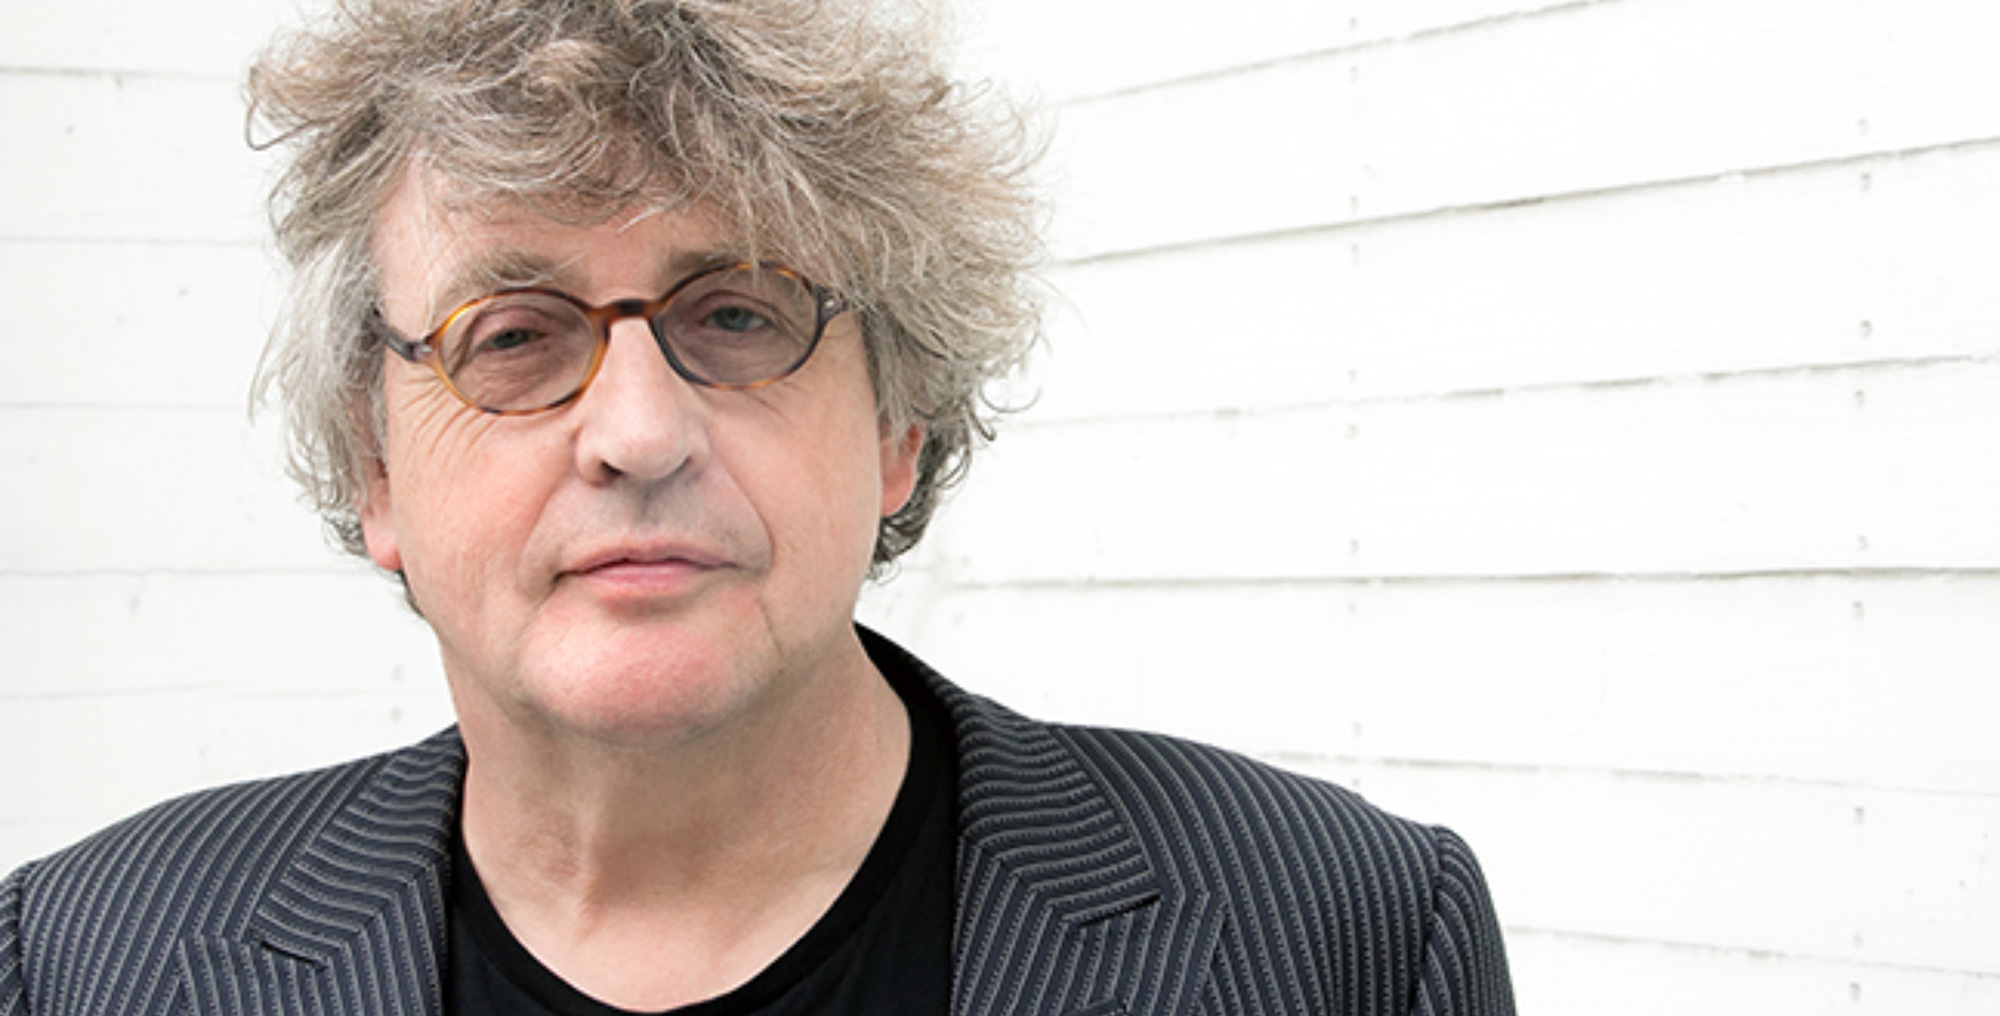 Headshot of Paul Muldoon